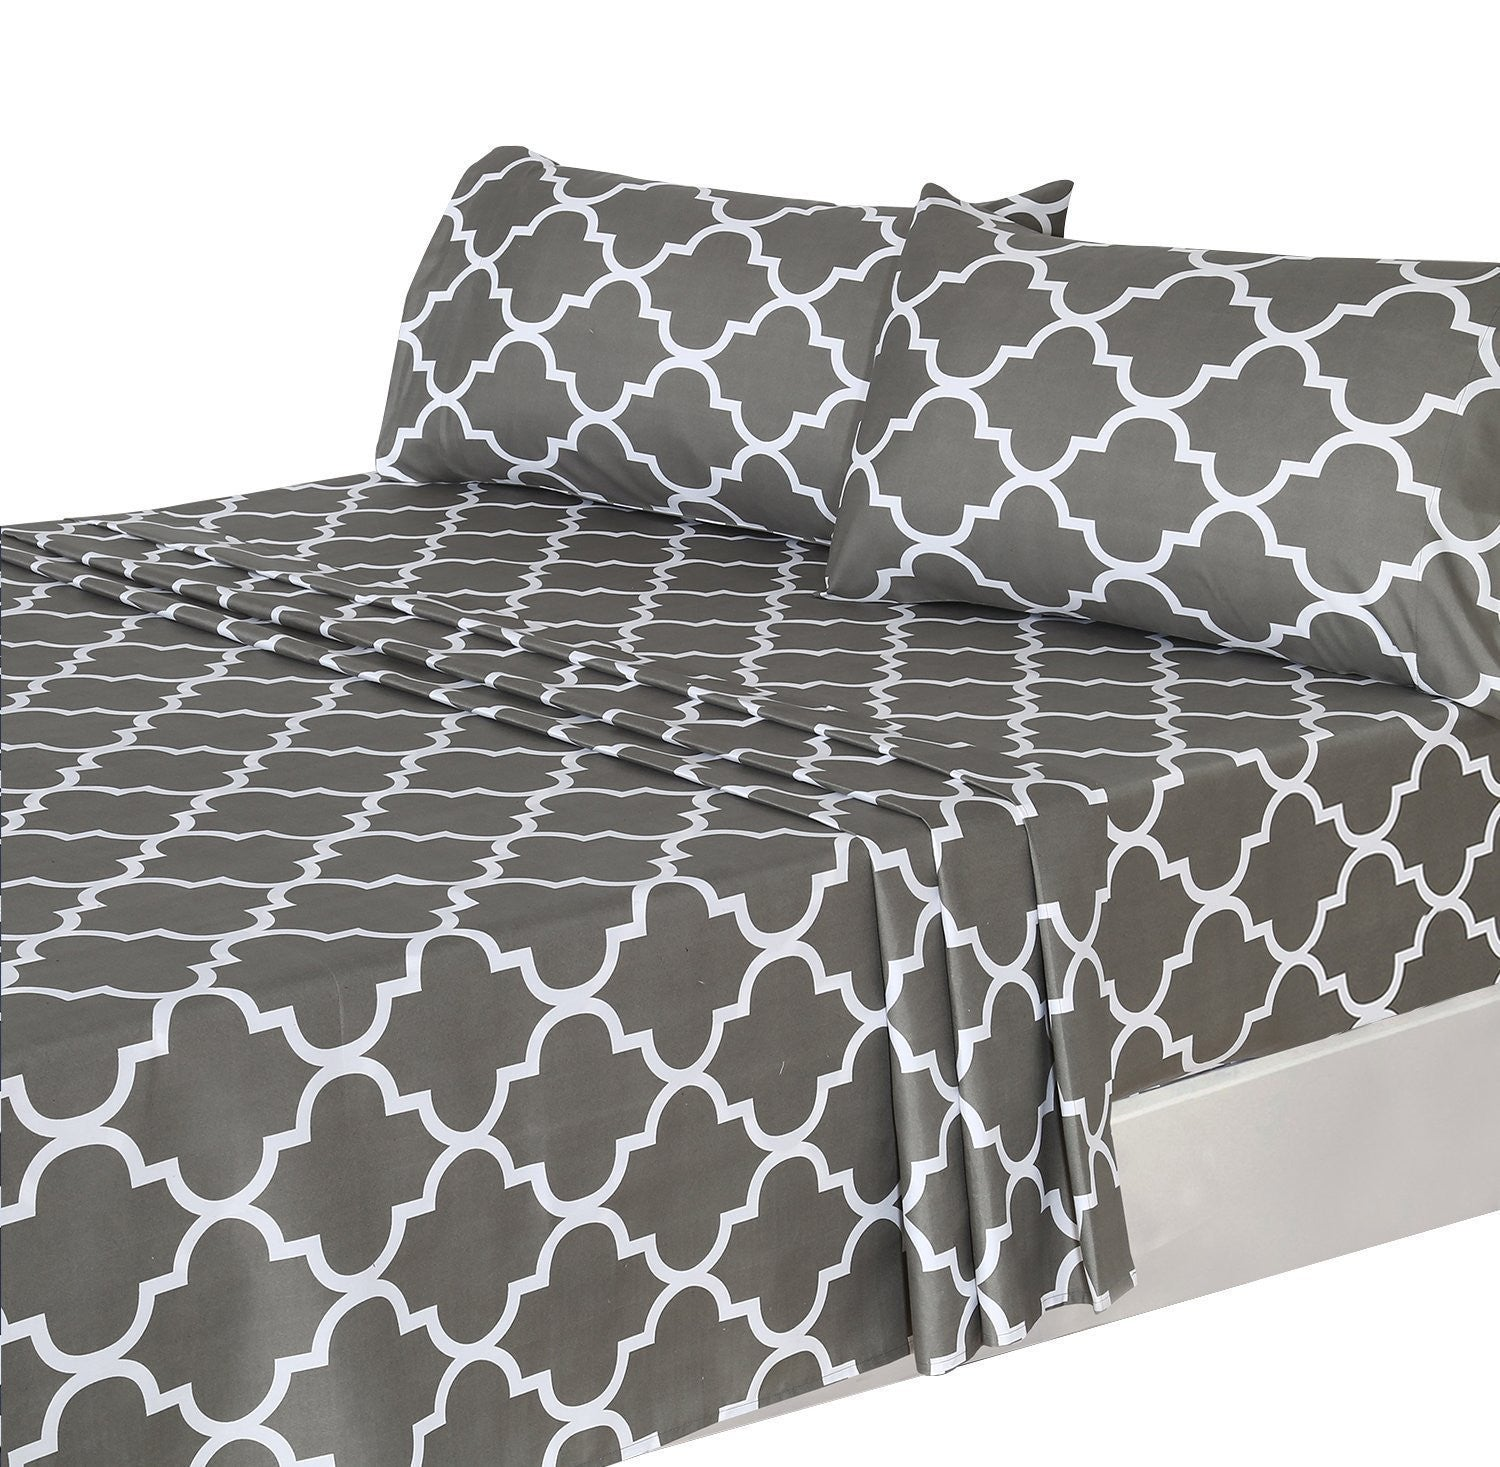 Printed Bed Sheet Set (Grey)